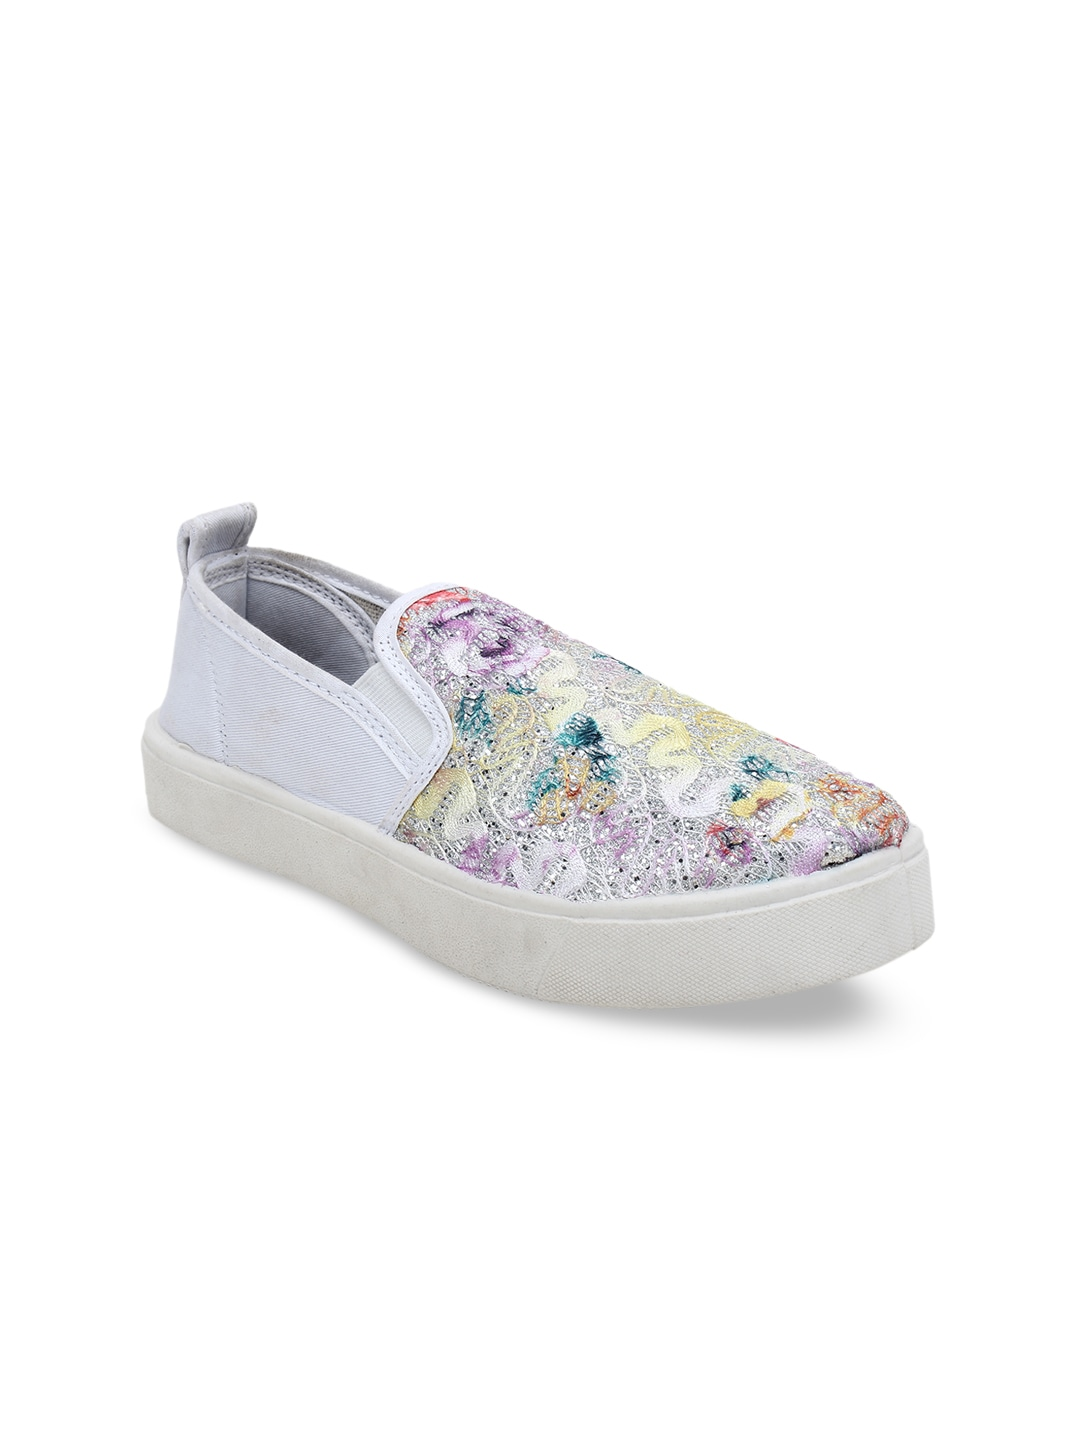 Multicoloured Woven Design Slip-On Sneakers